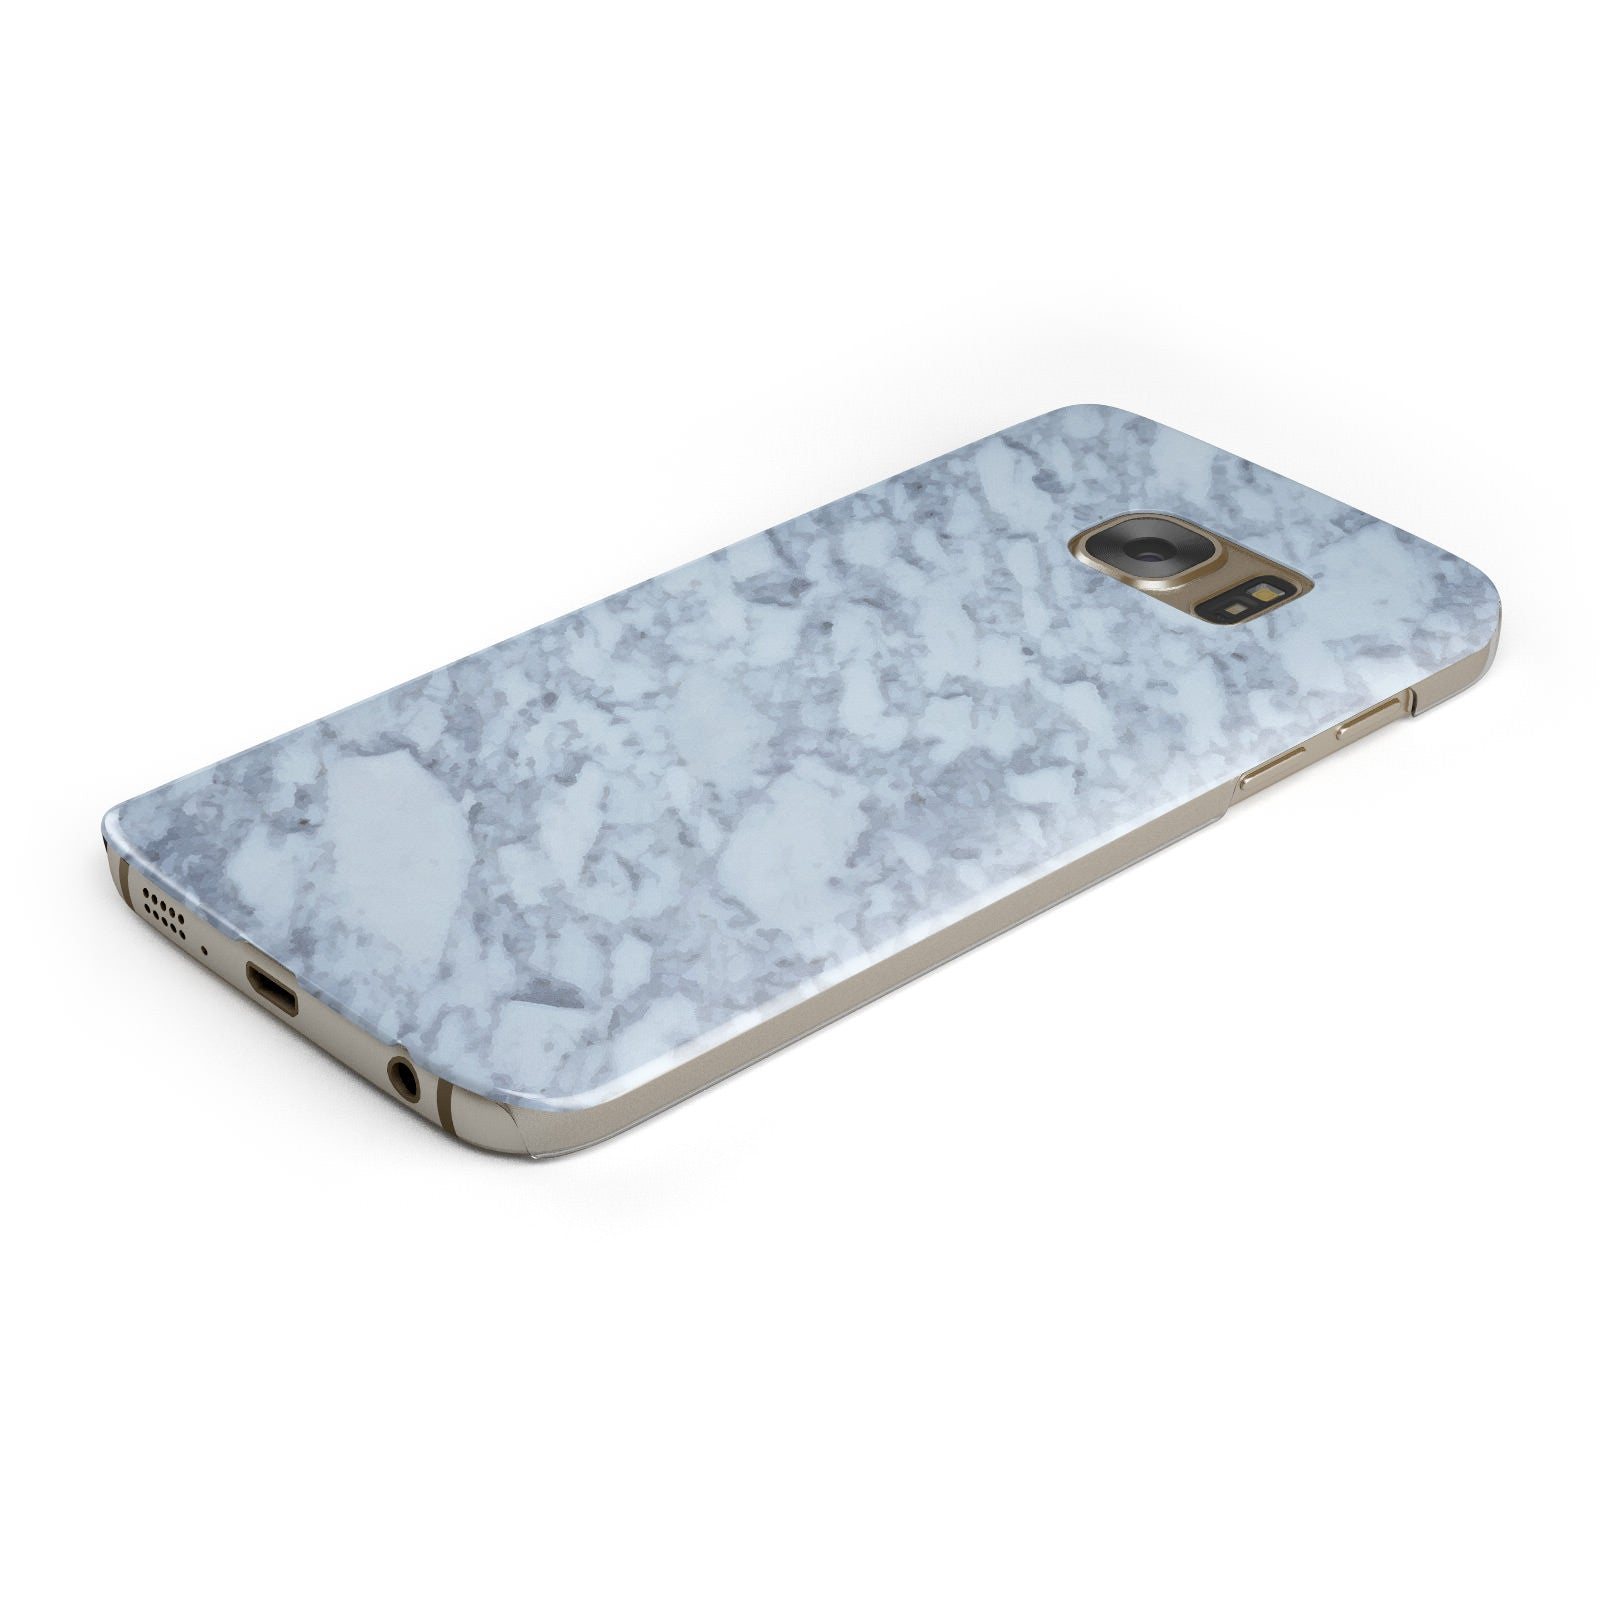 Faux Marble Grey 2 Samsung Galaxy Case Bottom Cutout